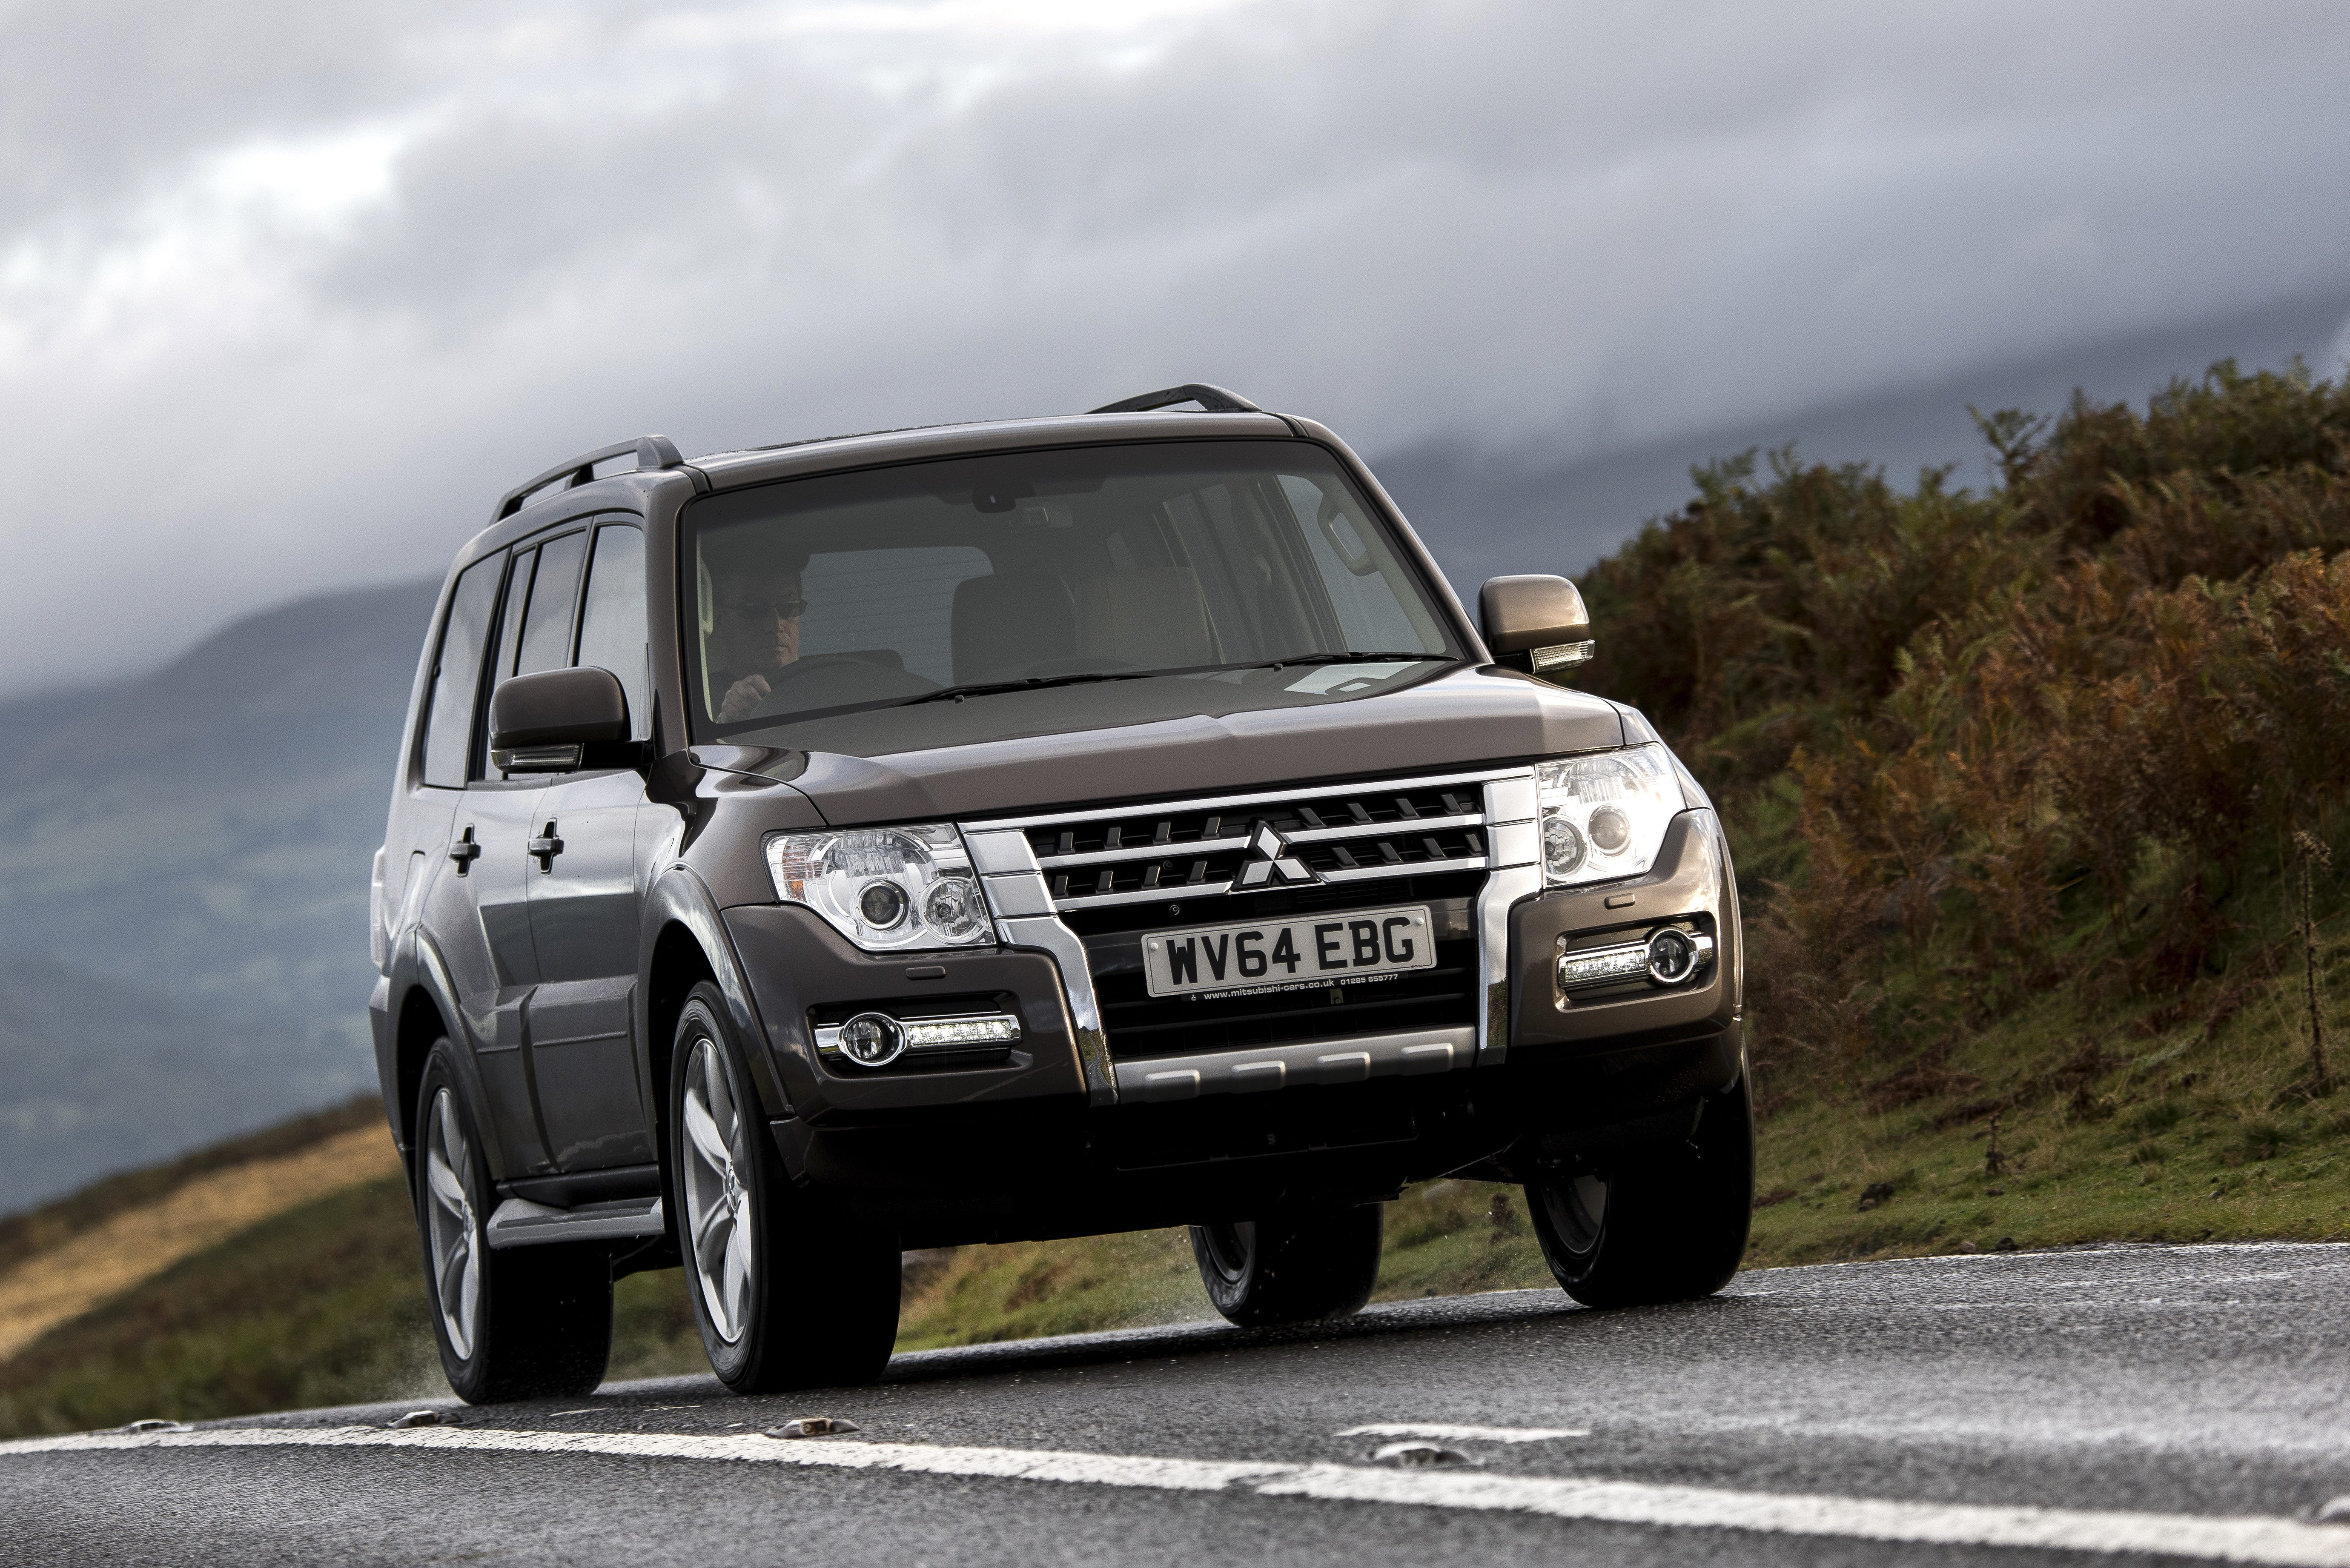 The Mitsubishi Shogun, also known as the Pajero or Montero in other markets.  Mitsubishi announced plans to offer Apple CarPlay and Android Auto products in its 2016 Pajero this summer in Europe.